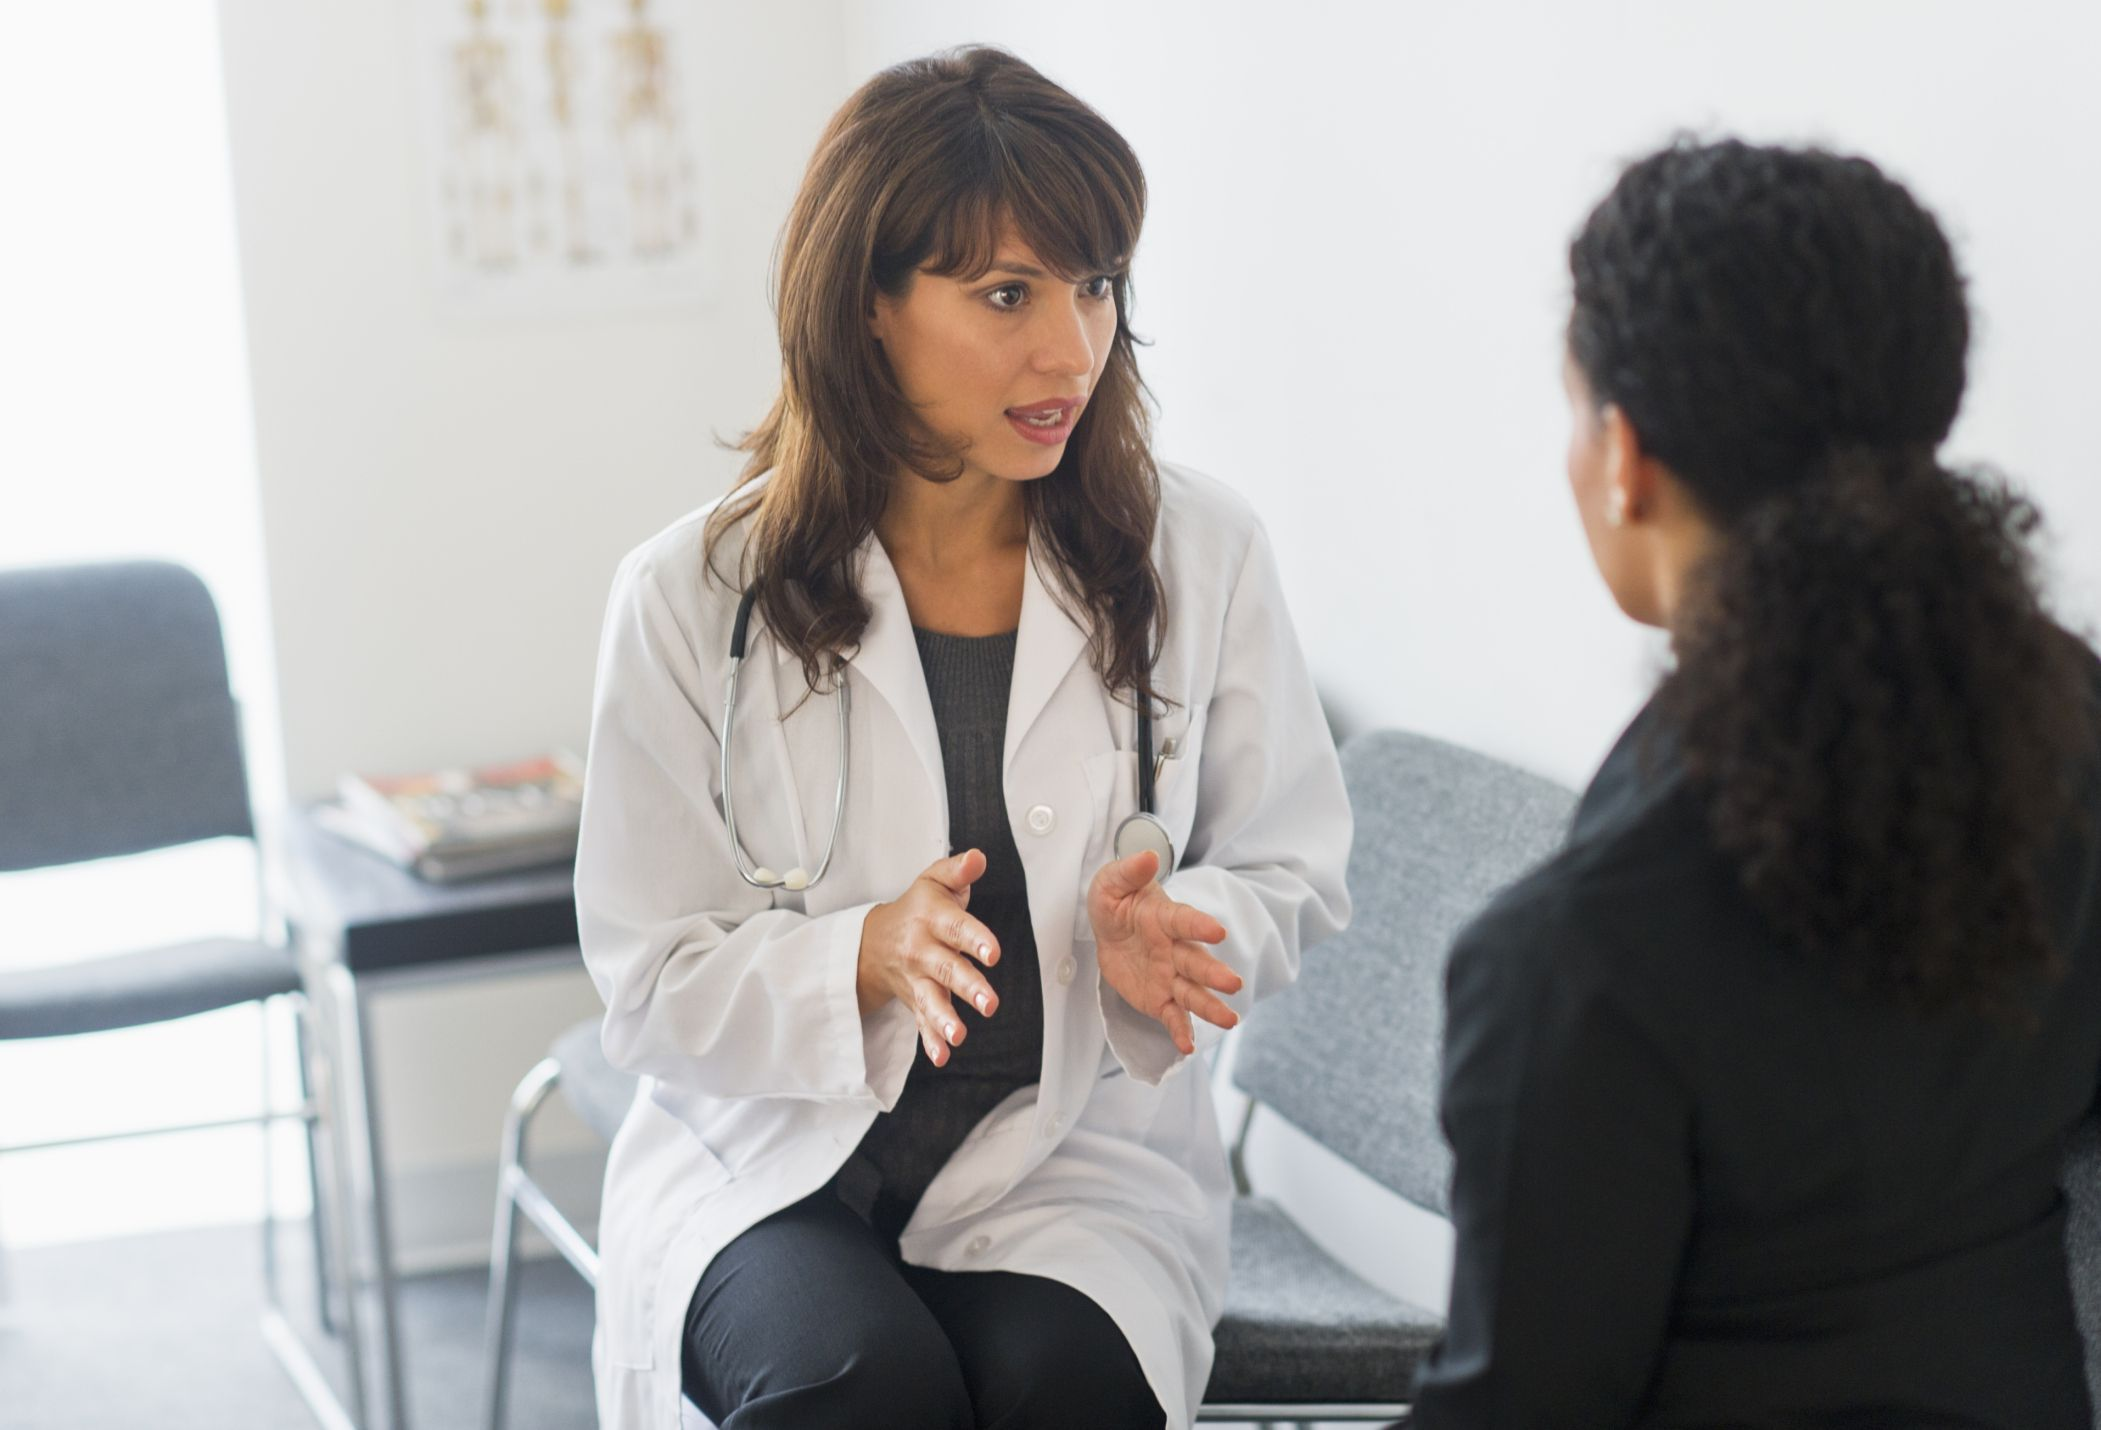 Doctor discussion with Patient